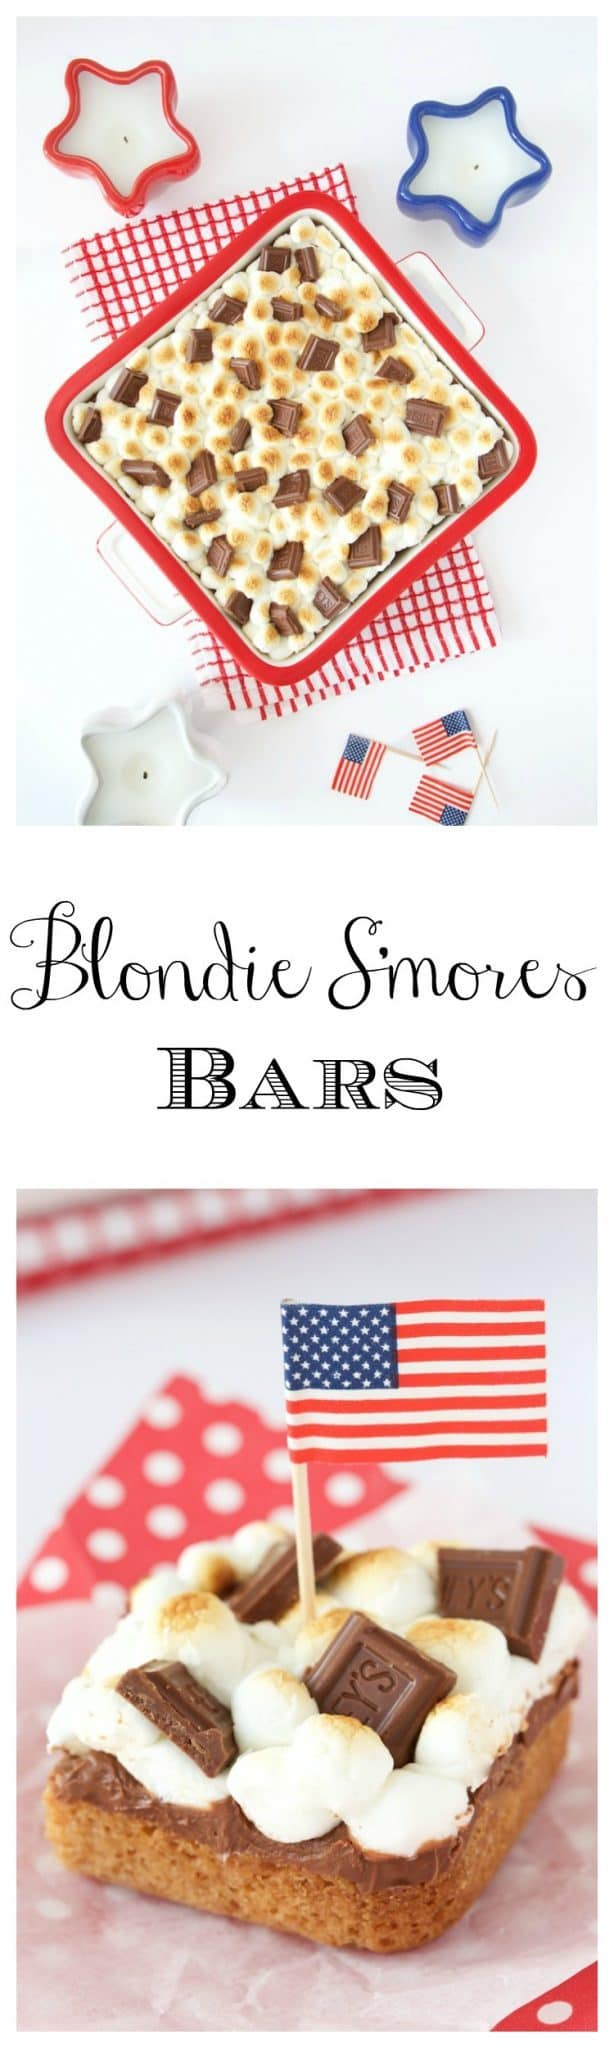 Easy Blondie S\'mores Bars | The Café Sucre Farine